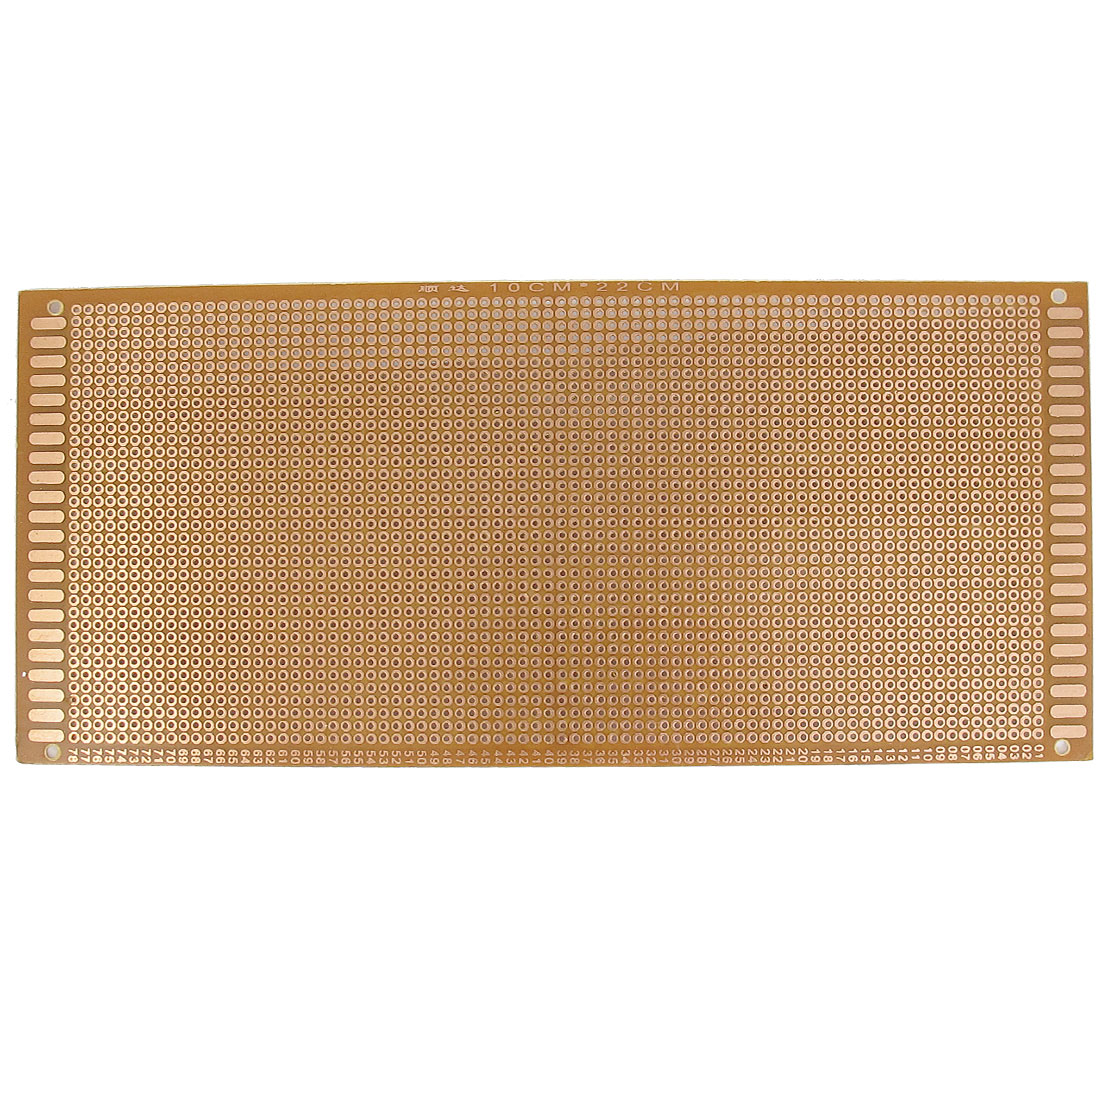 Universal Single Side Copper Tone Panel Prototype PCB Board 10cm x 22cm